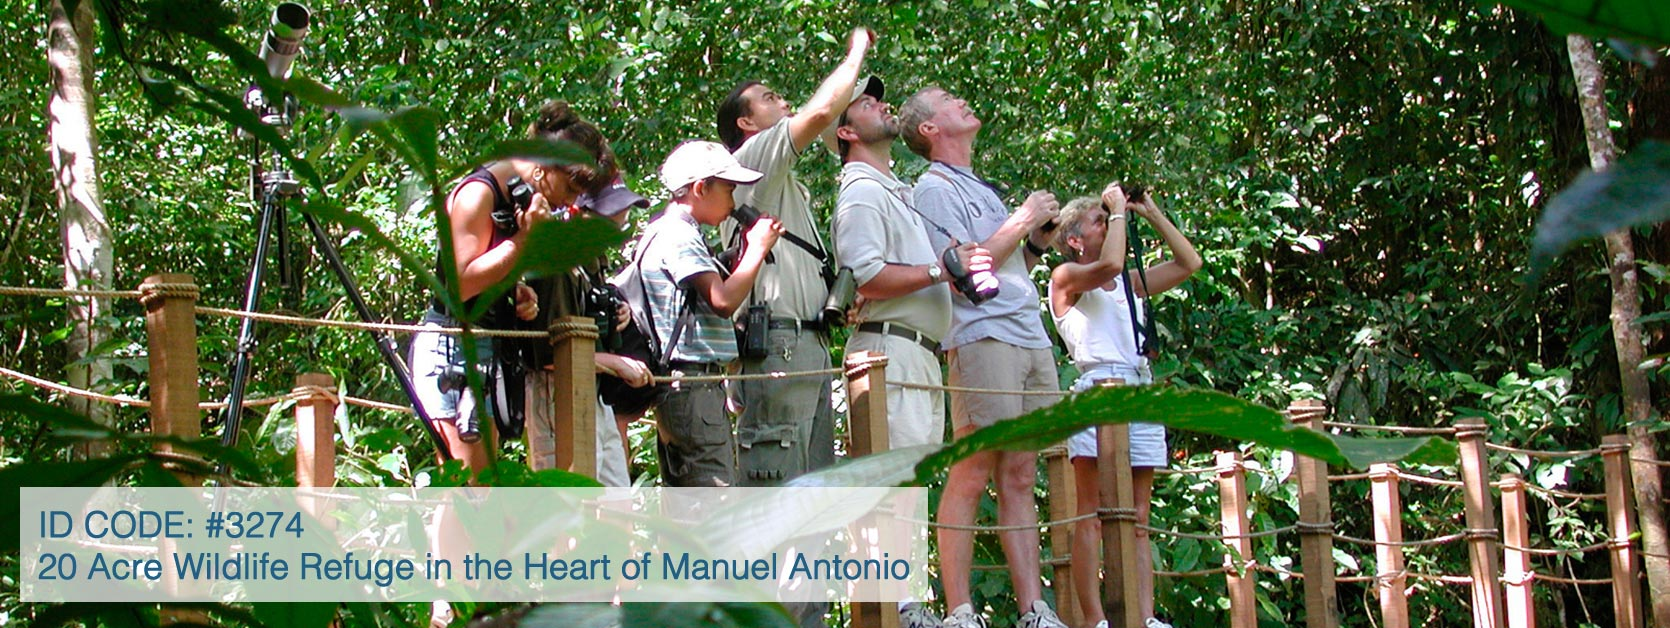 20 Acre Wildlife Refuge in the Heart of Manuel Antonio, A Conservationist's Investment Dream